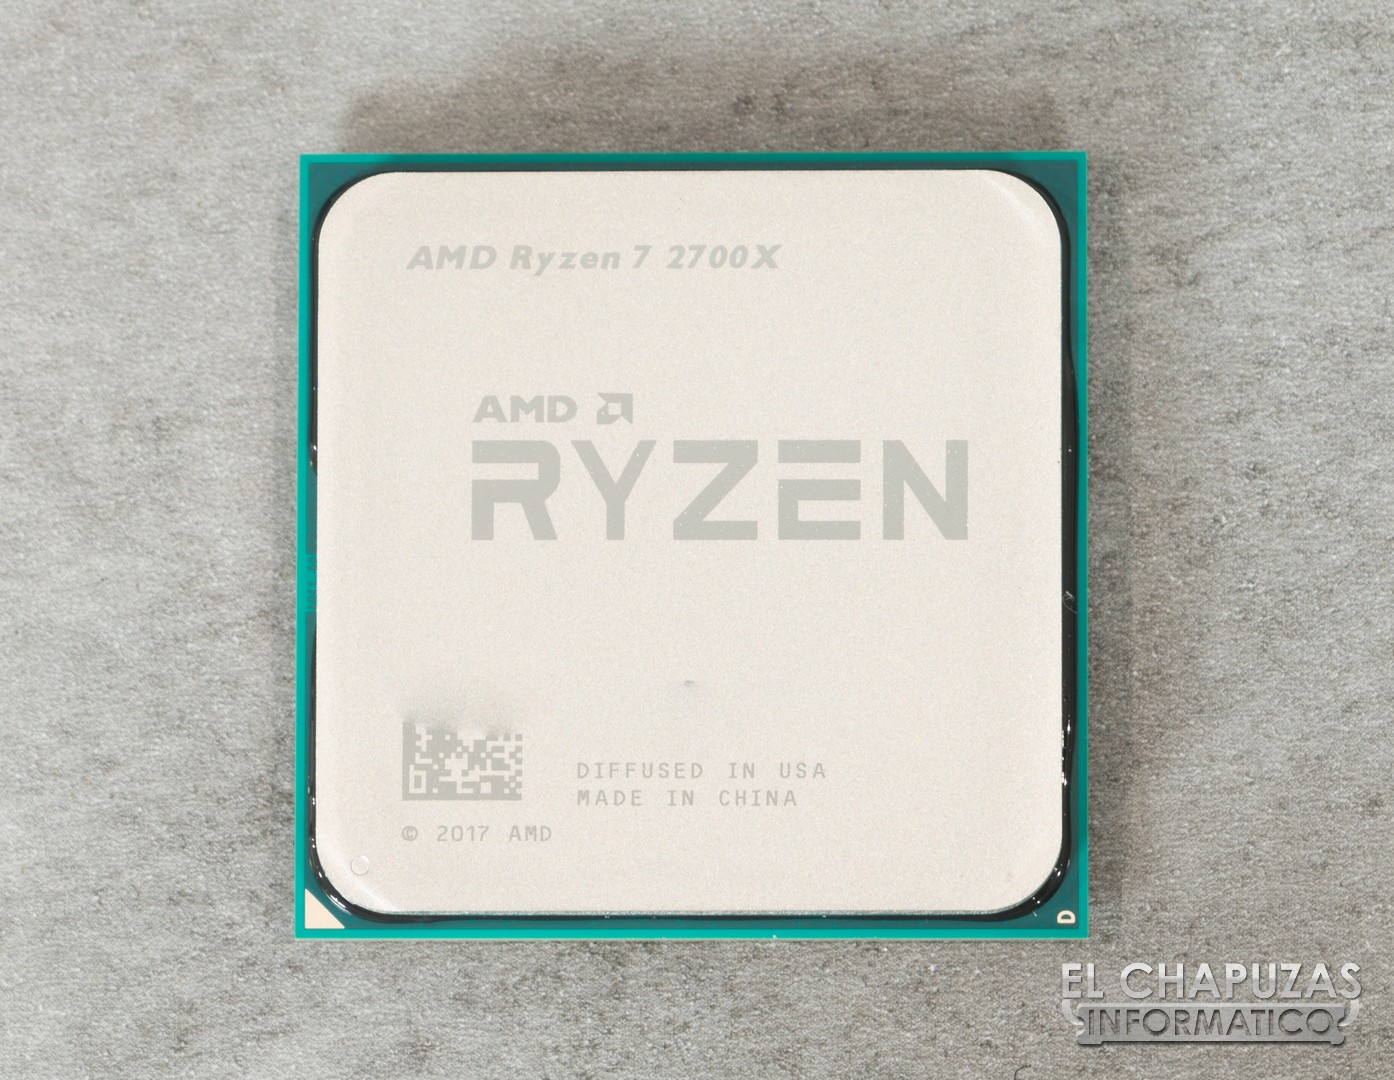 Reviews and Overclocking Results Appearing for 2nd Generation Ryzen CPUs